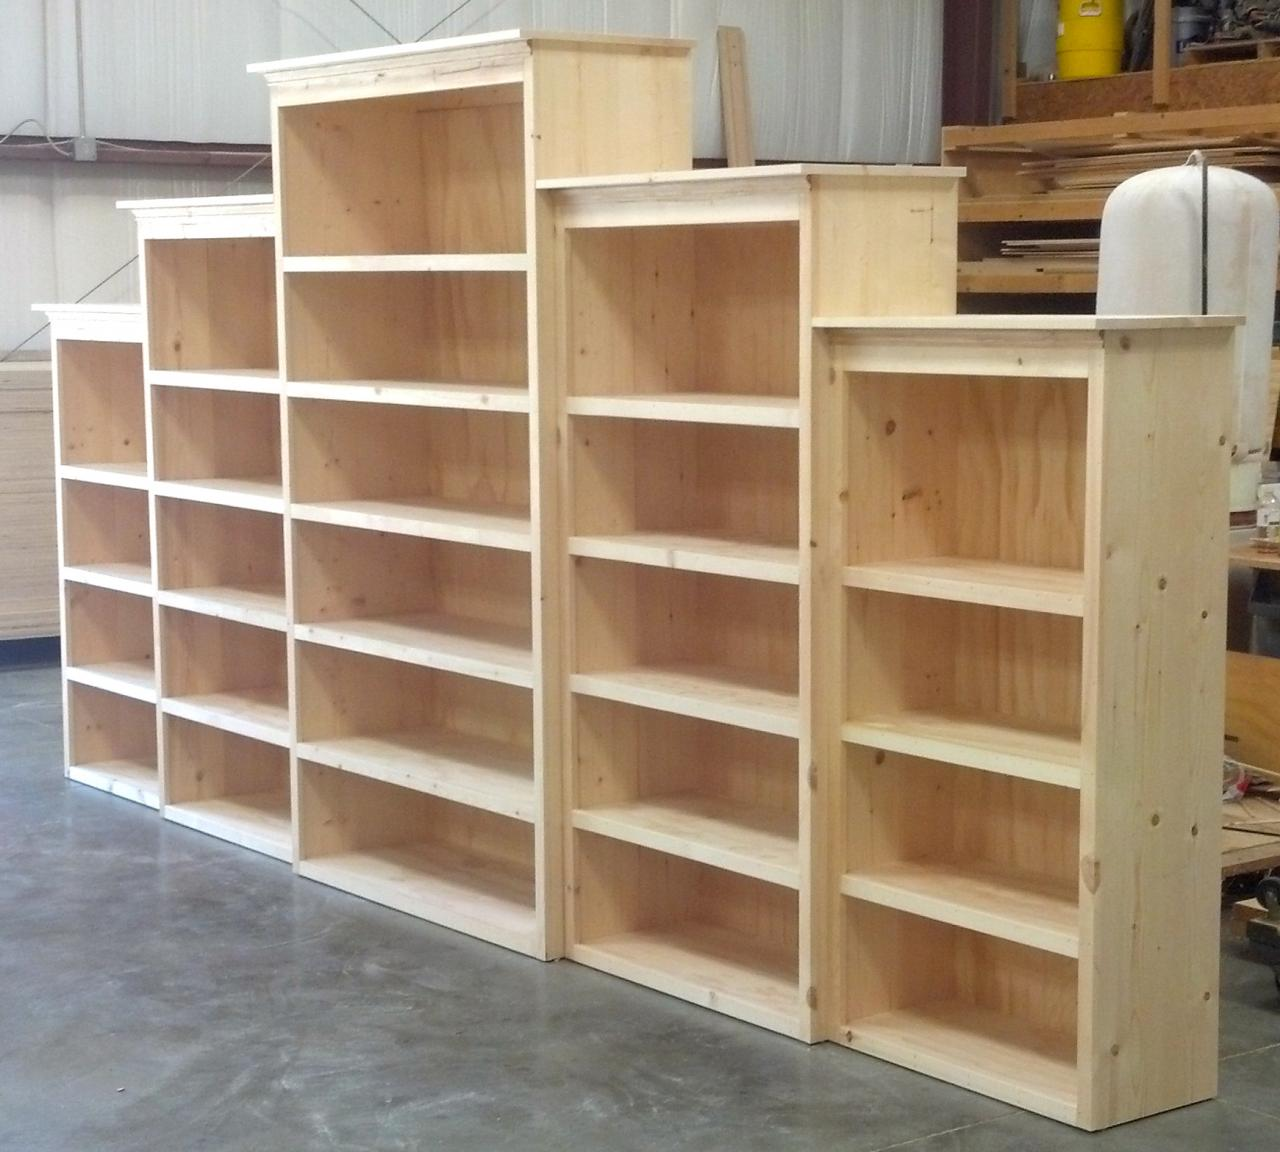 Marvelous photograph of wood retail display bookcase shelf unit t shirts with #A58026 color and 1280x1152 pixels